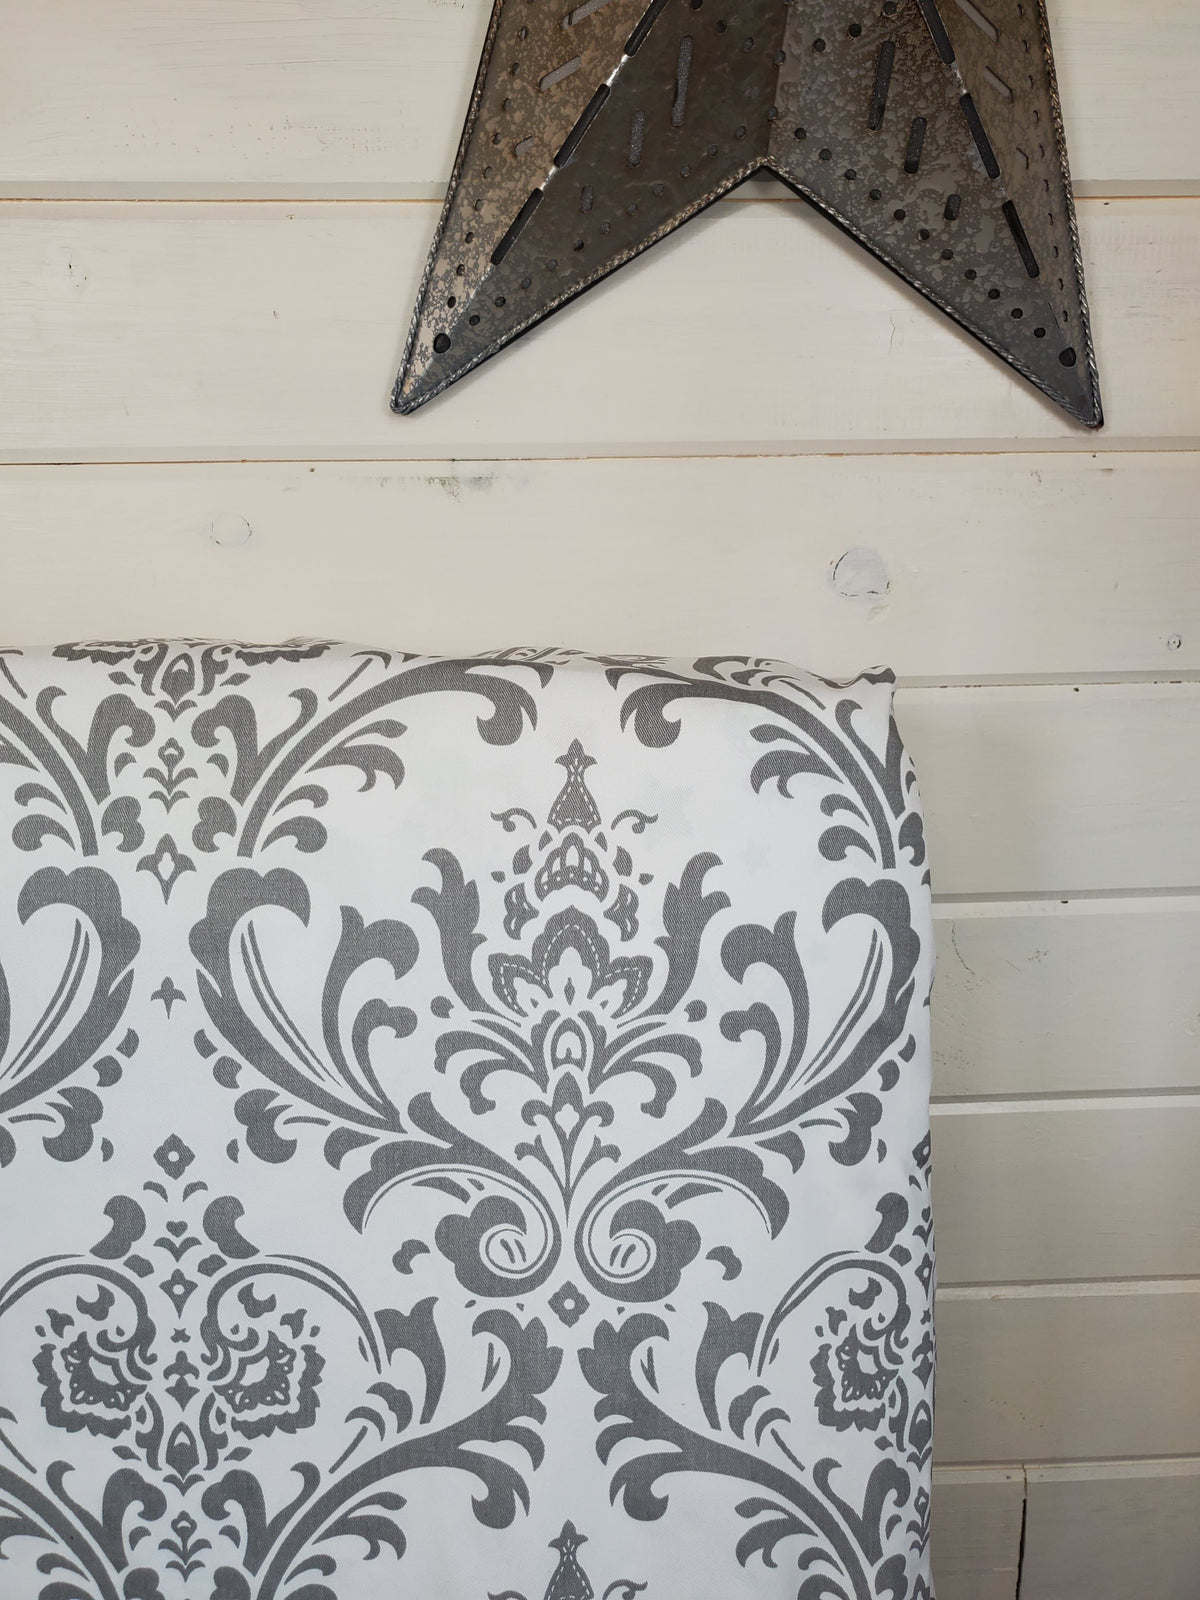 Fitted Sheet - Damask in White Gray : All Bed Sizes